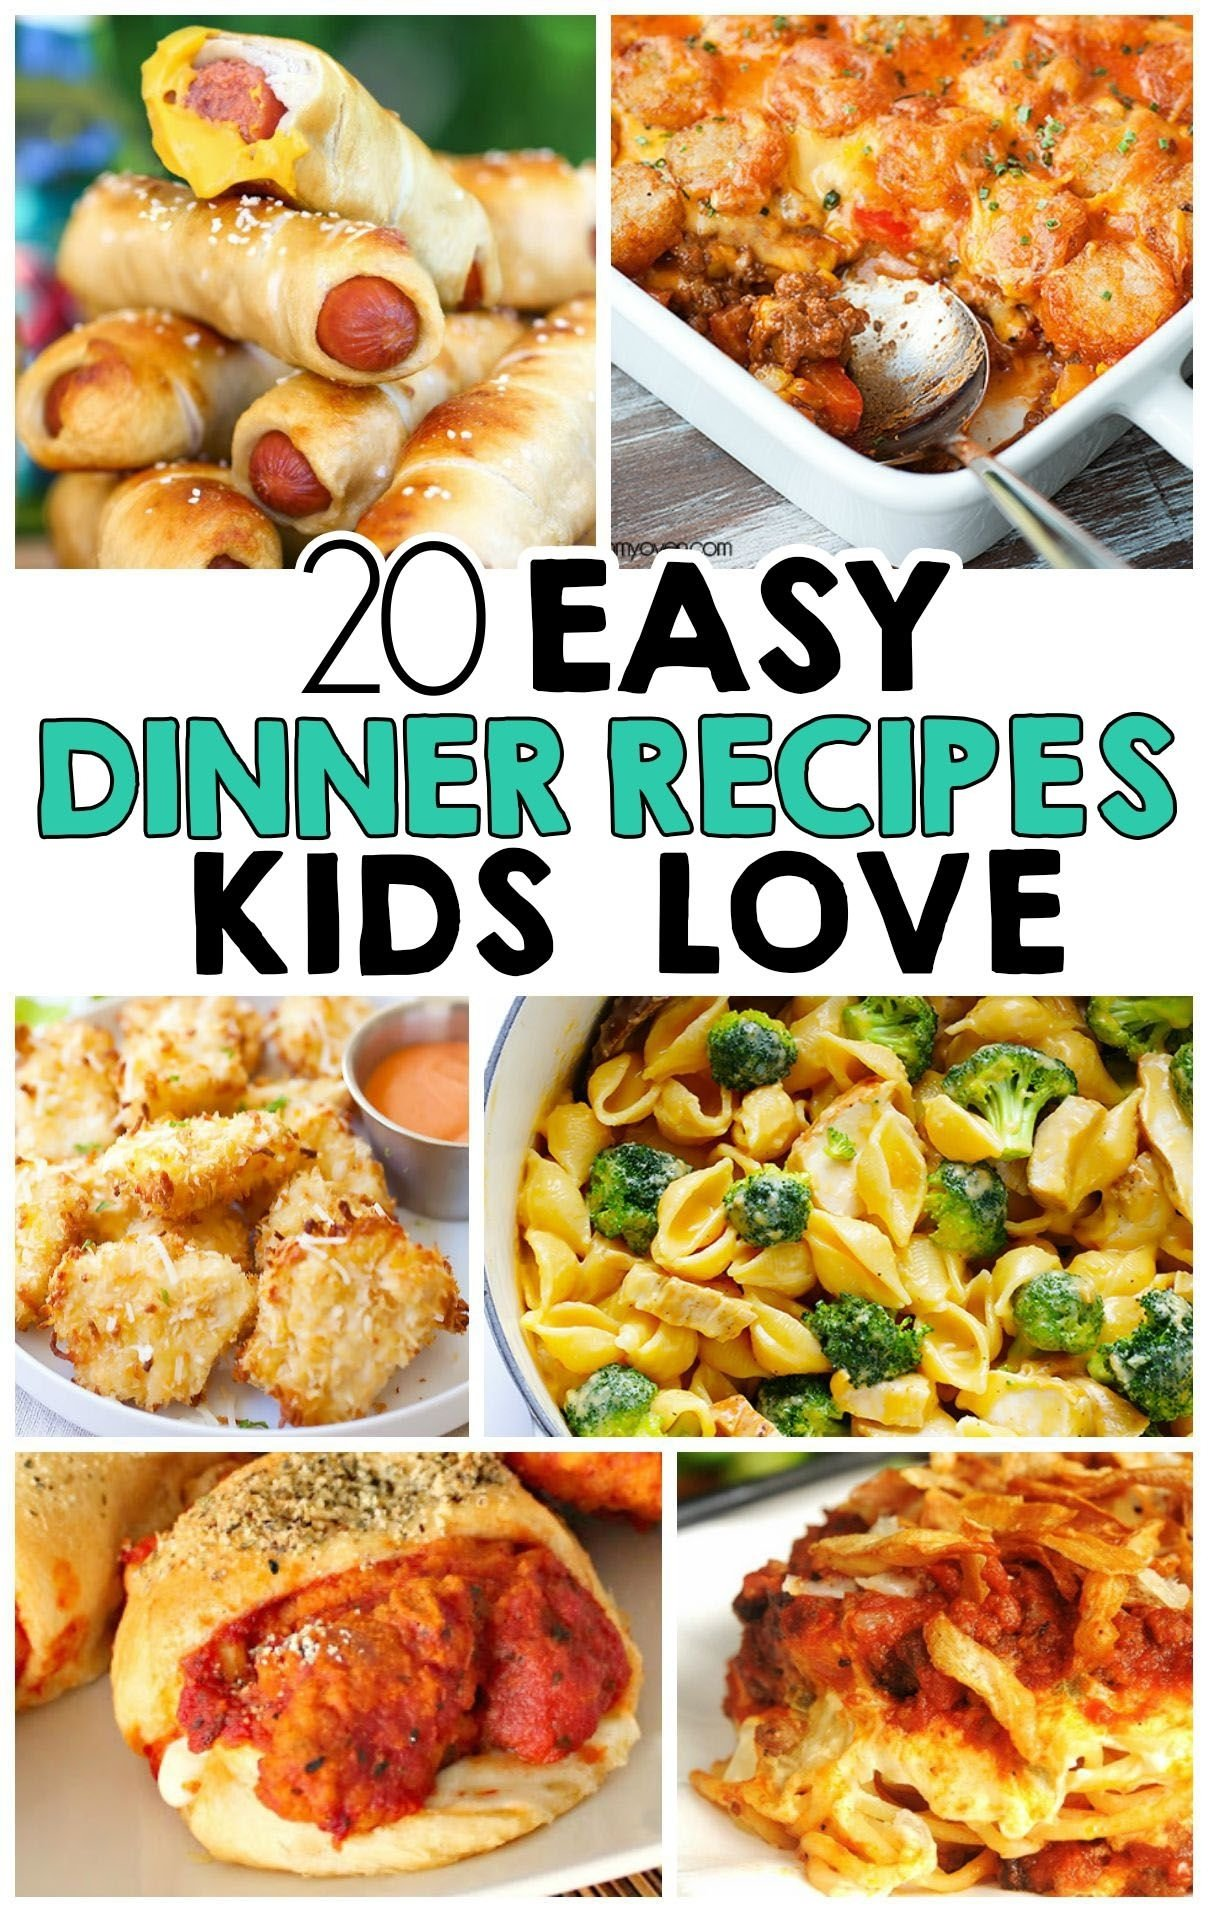 10 Fantastic Cheap And Simple Dinner Ideas 20 easy dinner recipes that kids love dinners easy and recipes 7 2021